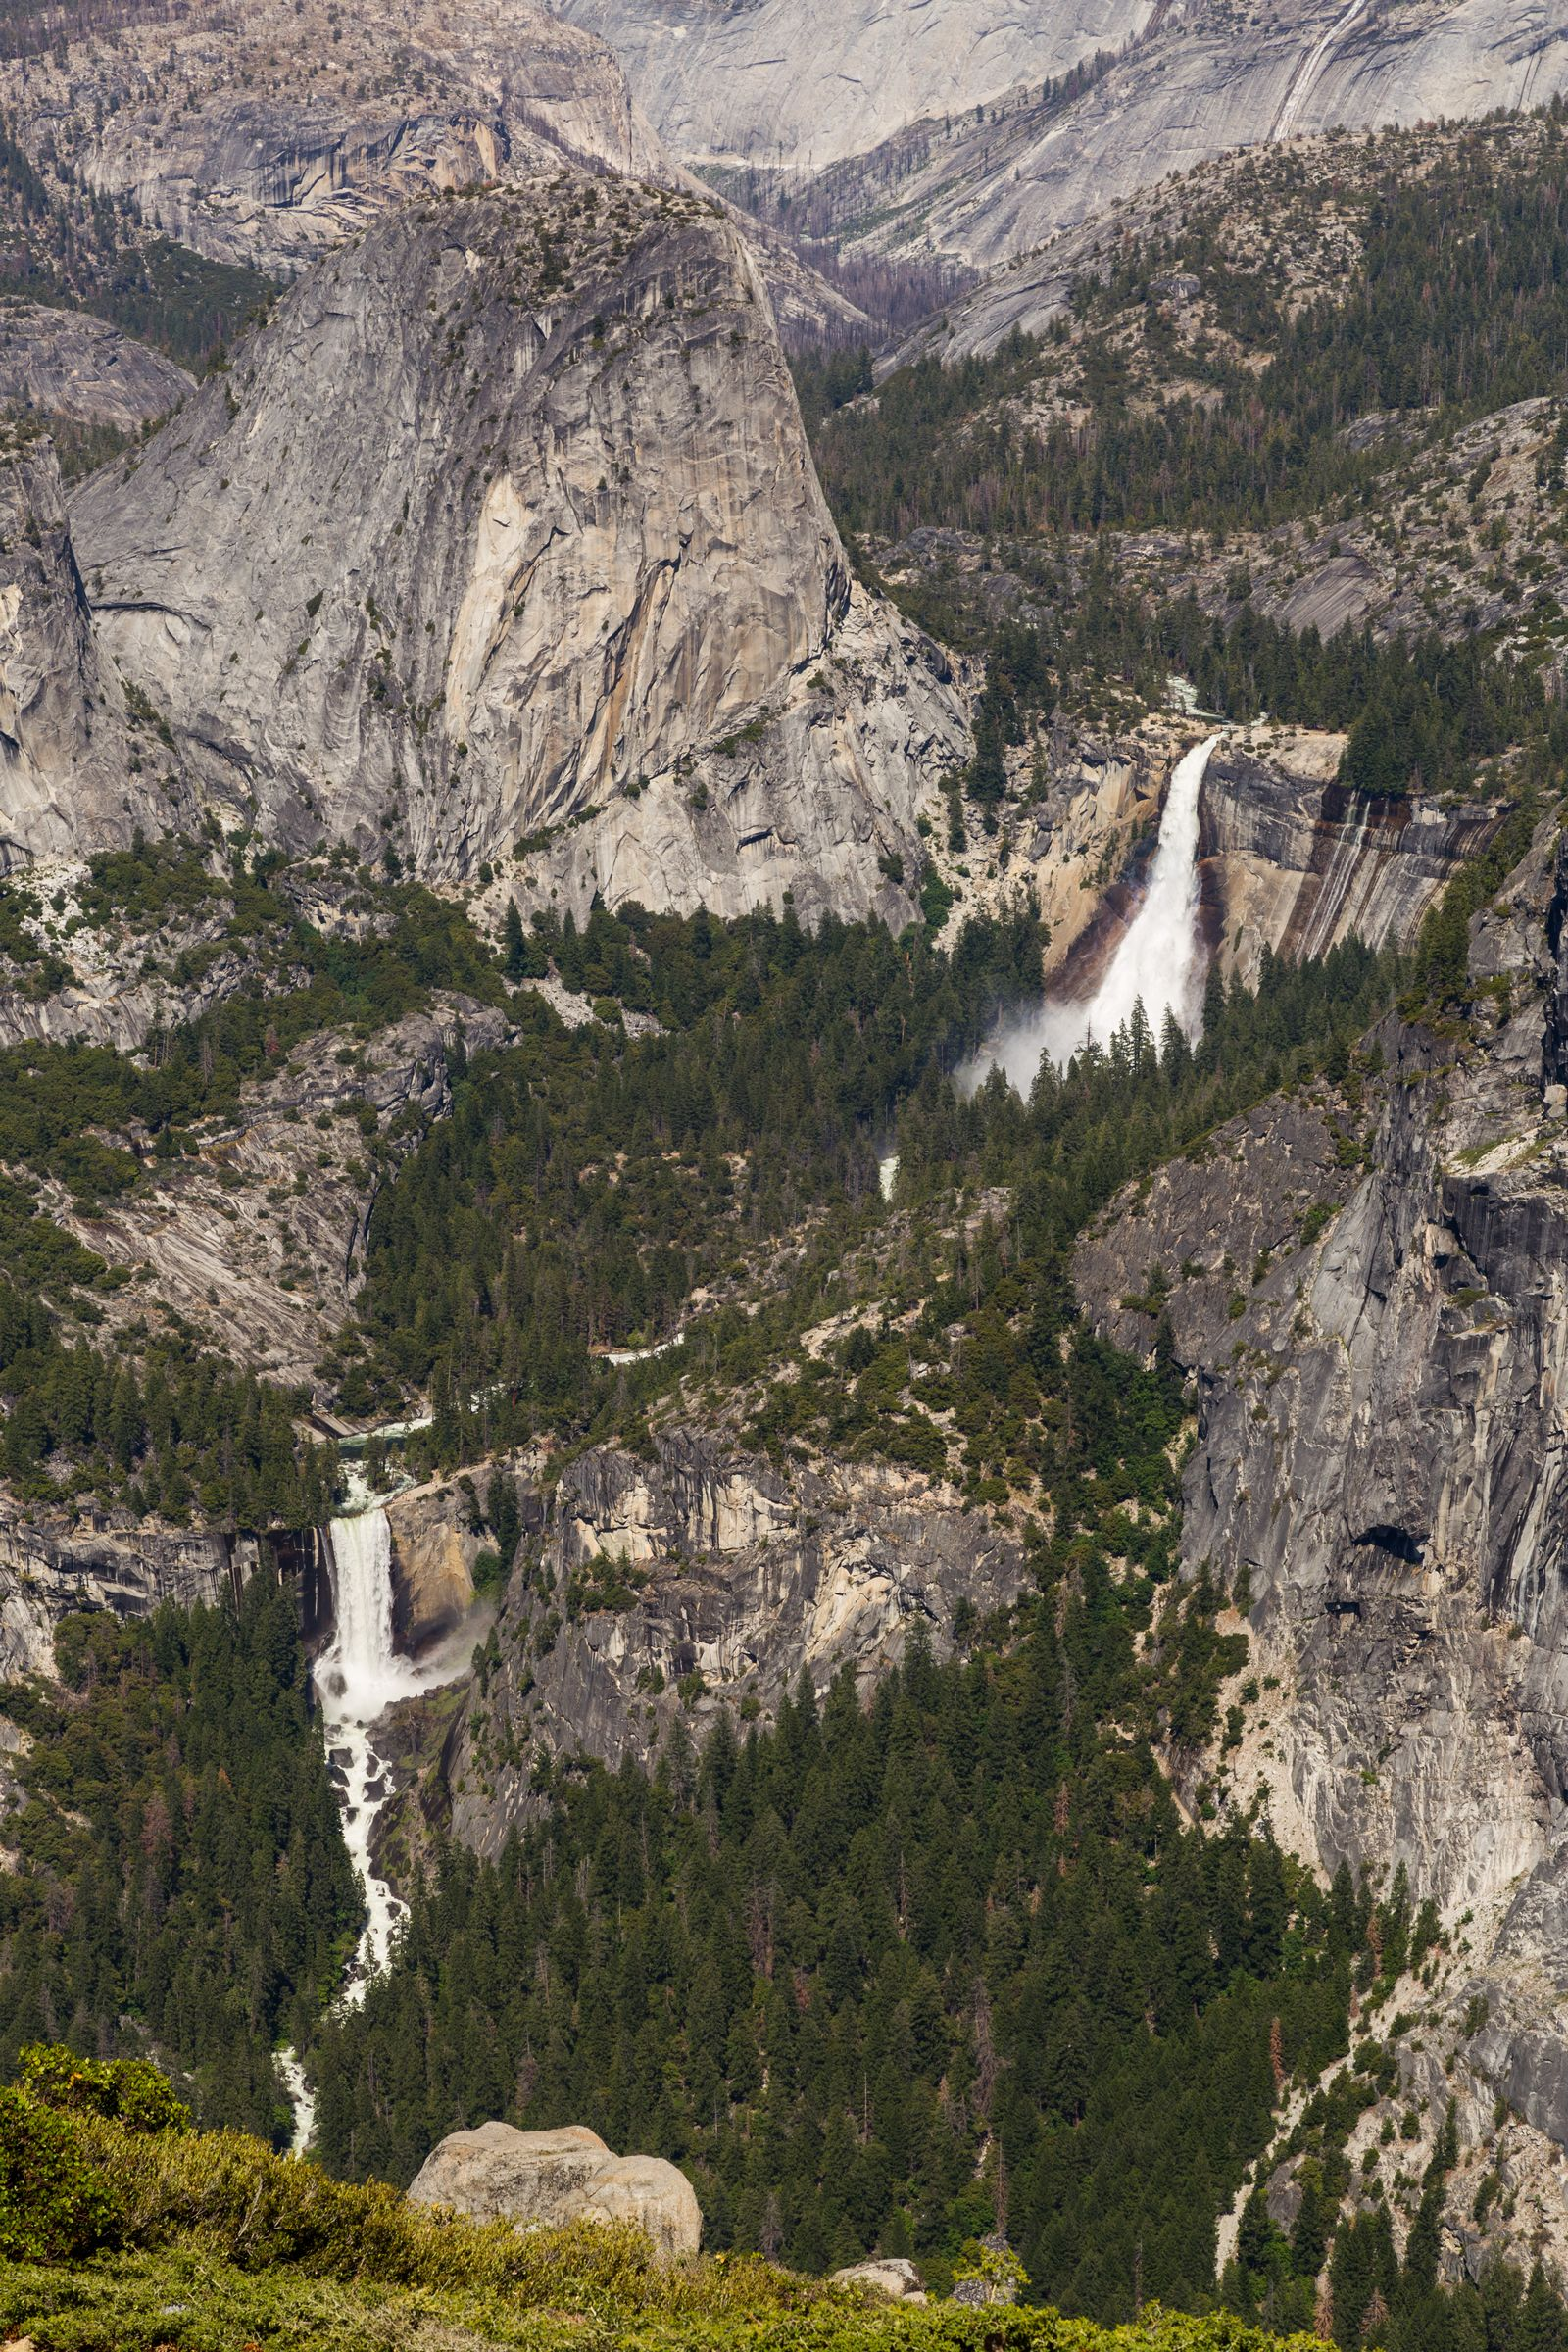 Liberty Cap, Nevada Fall y Vernal Fall